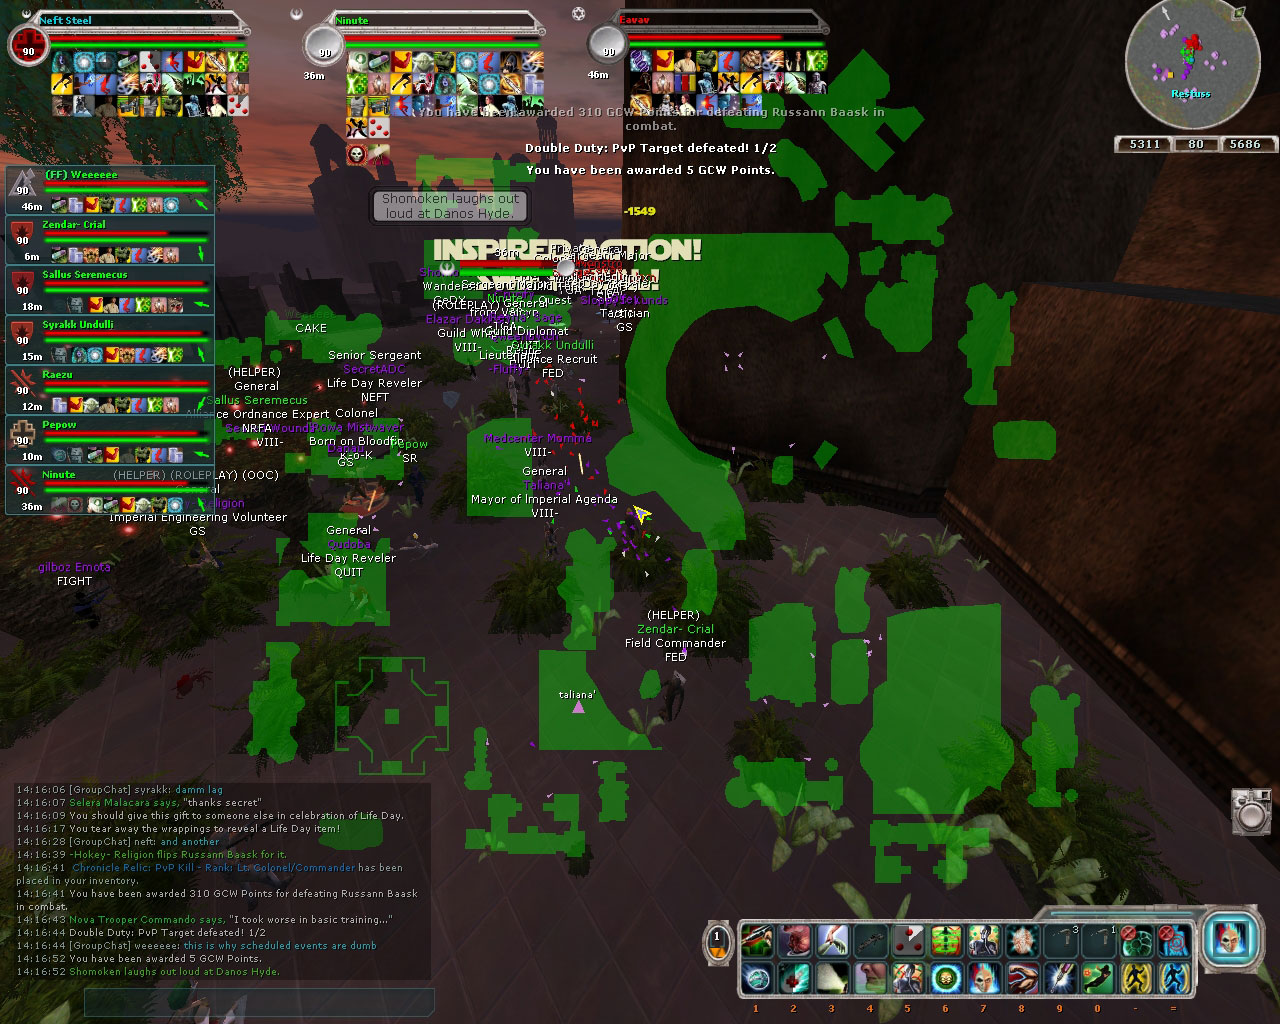 Sharing the joy of lifeday with my PVP friends.